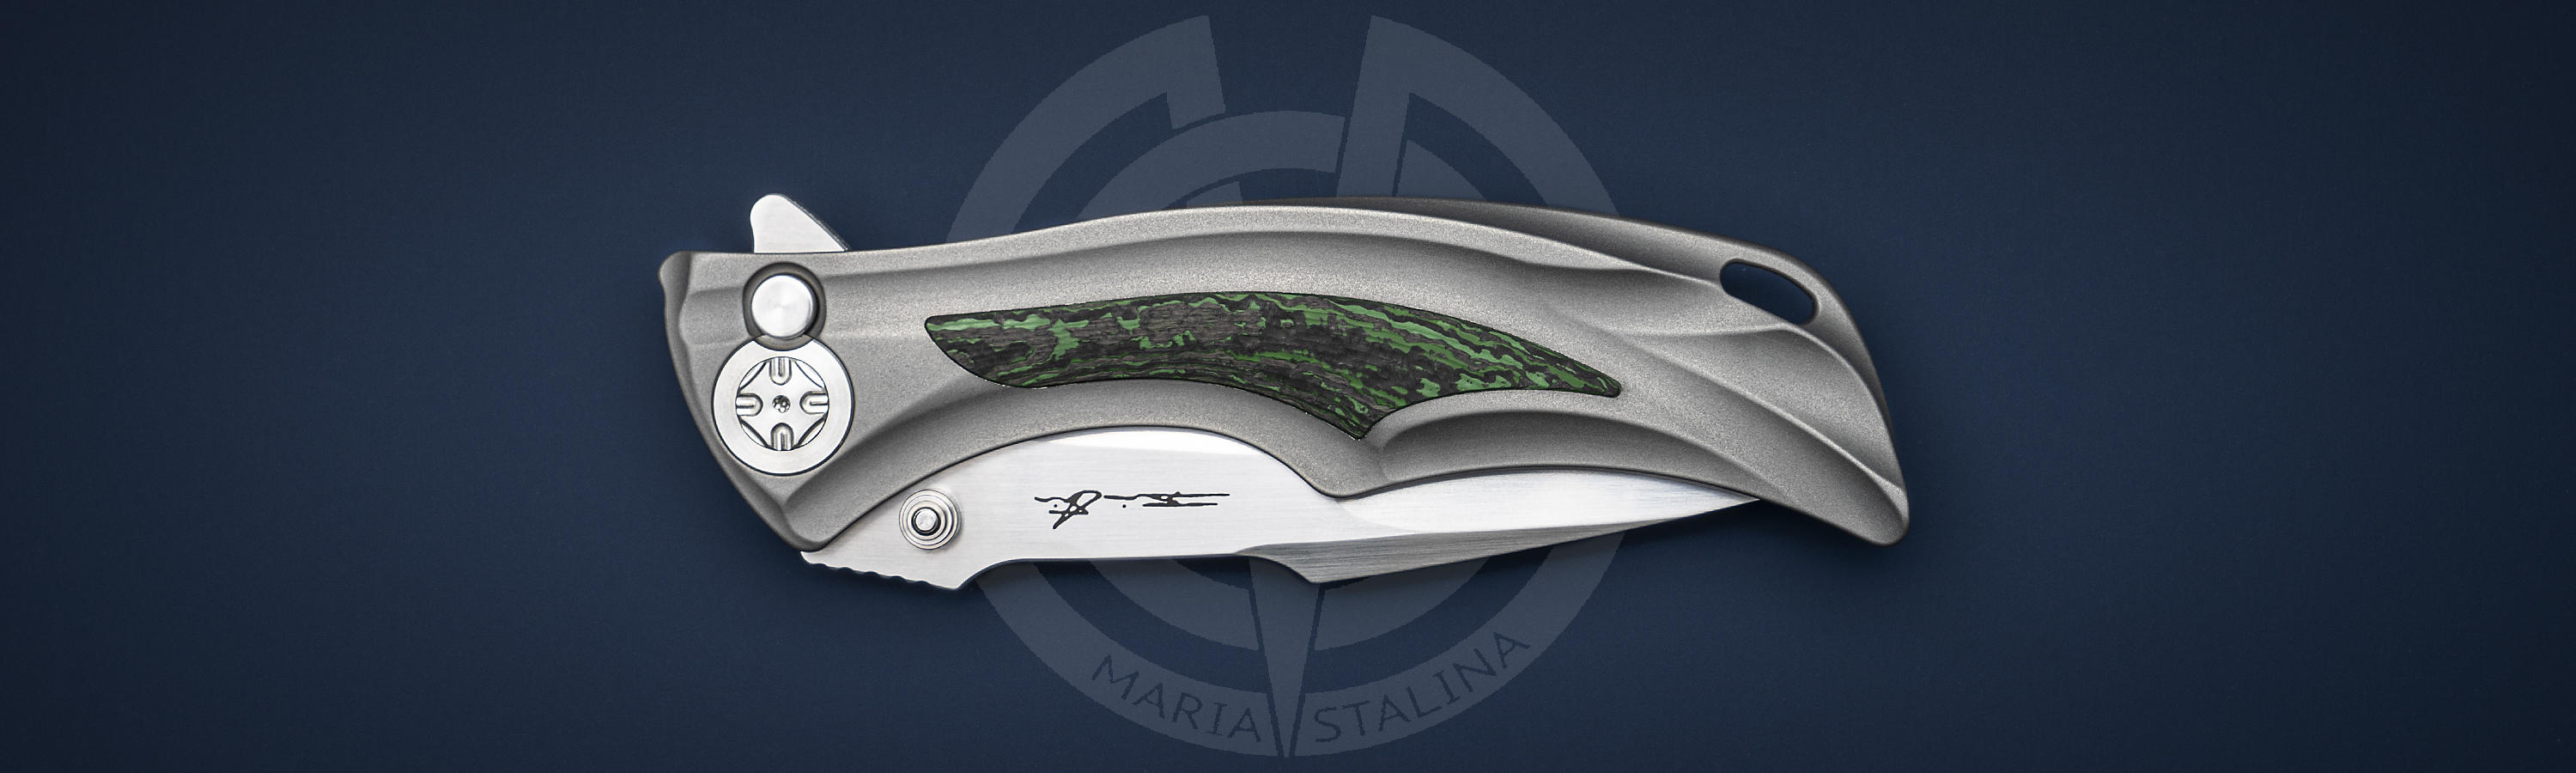 Titanium handle with carbon knife inserts of Down Integral Green Carbon Fiber